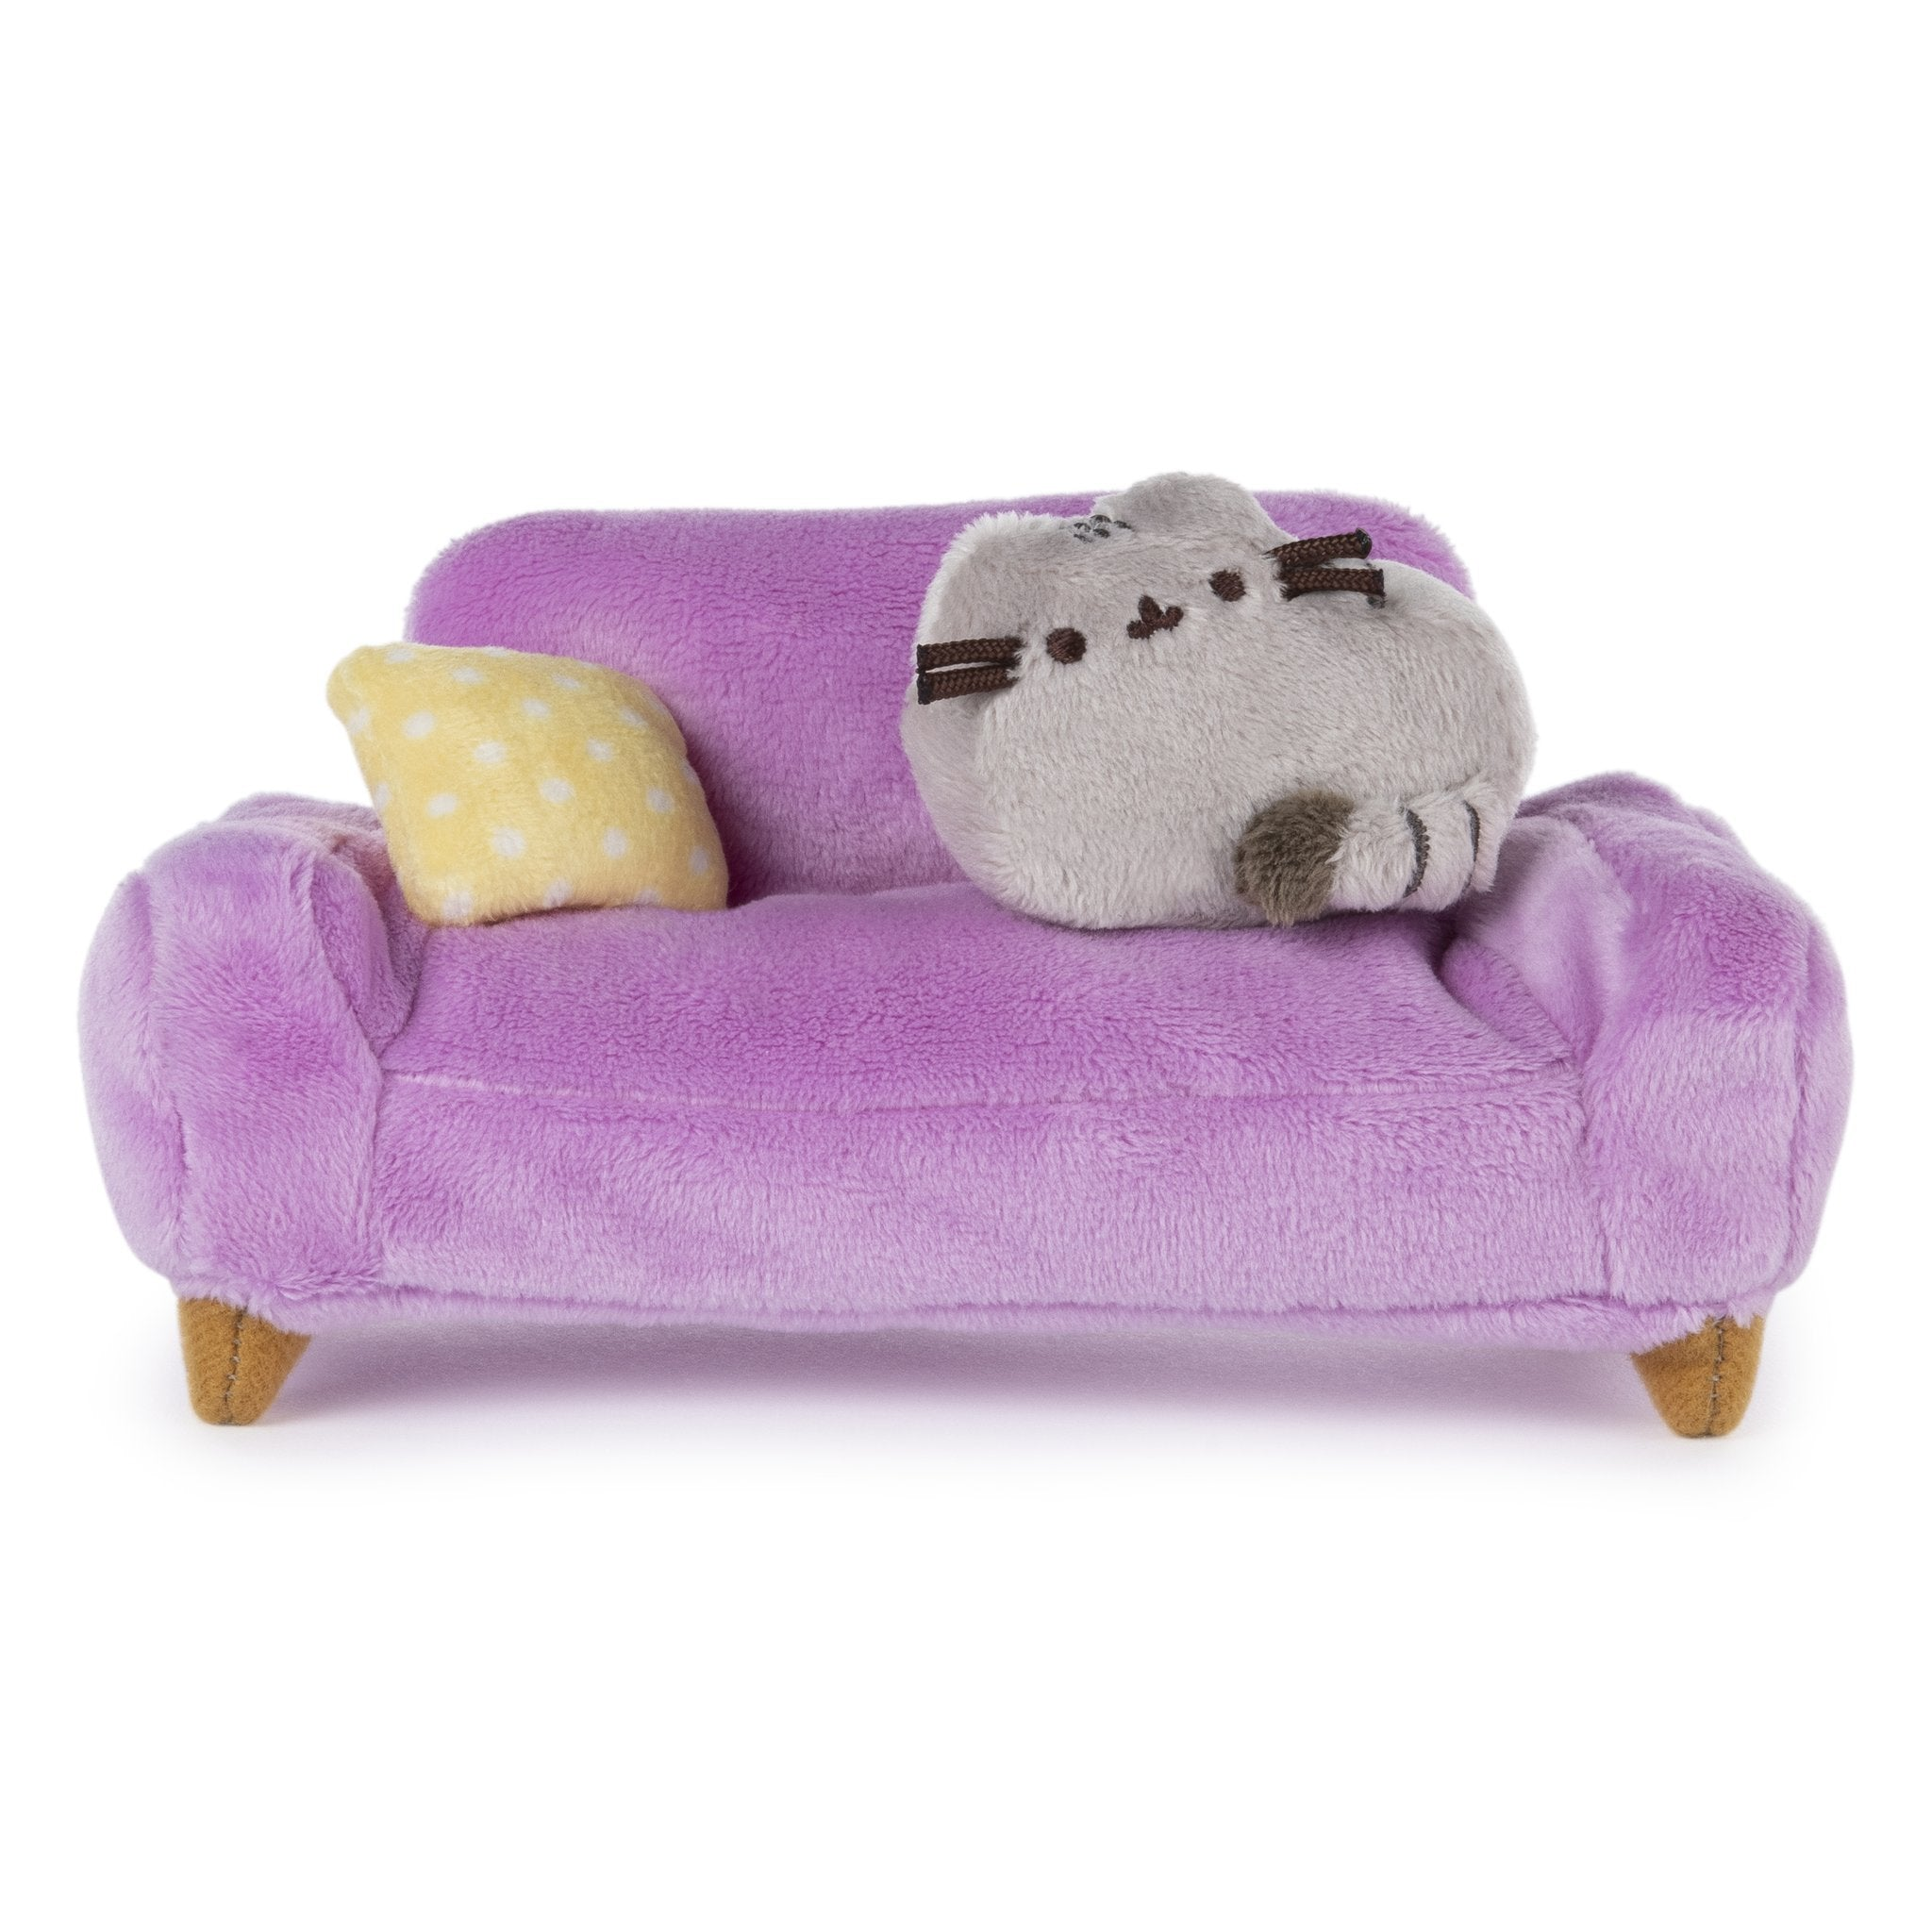 Pusheen On A Couch Collectors Set  Plush